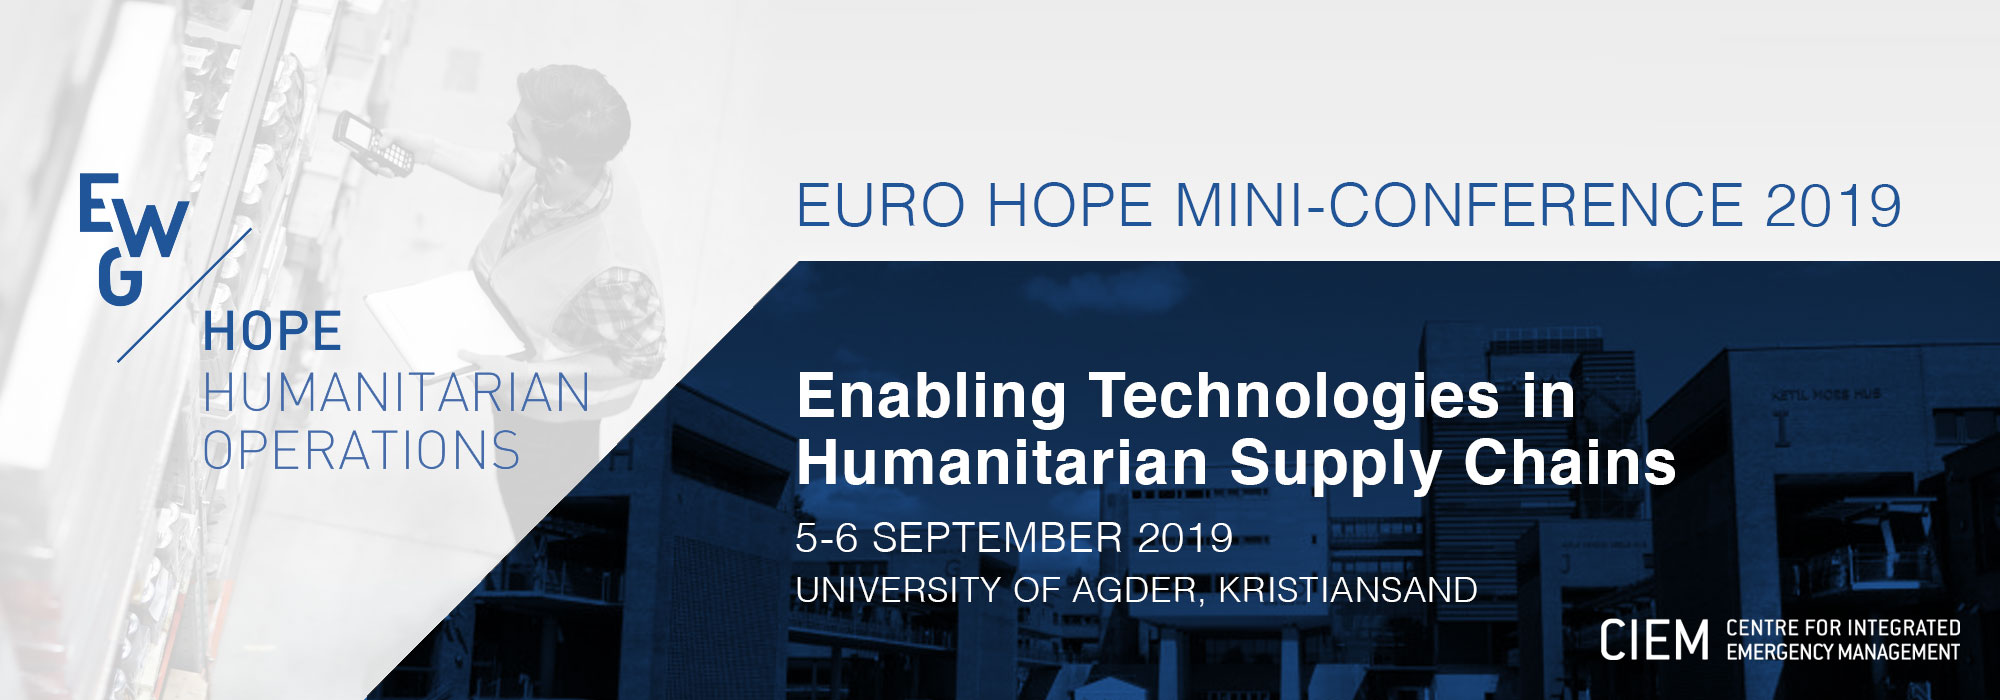 EURO HOPE MINI-CONFERENCE 2019 - Universitetet i Agder